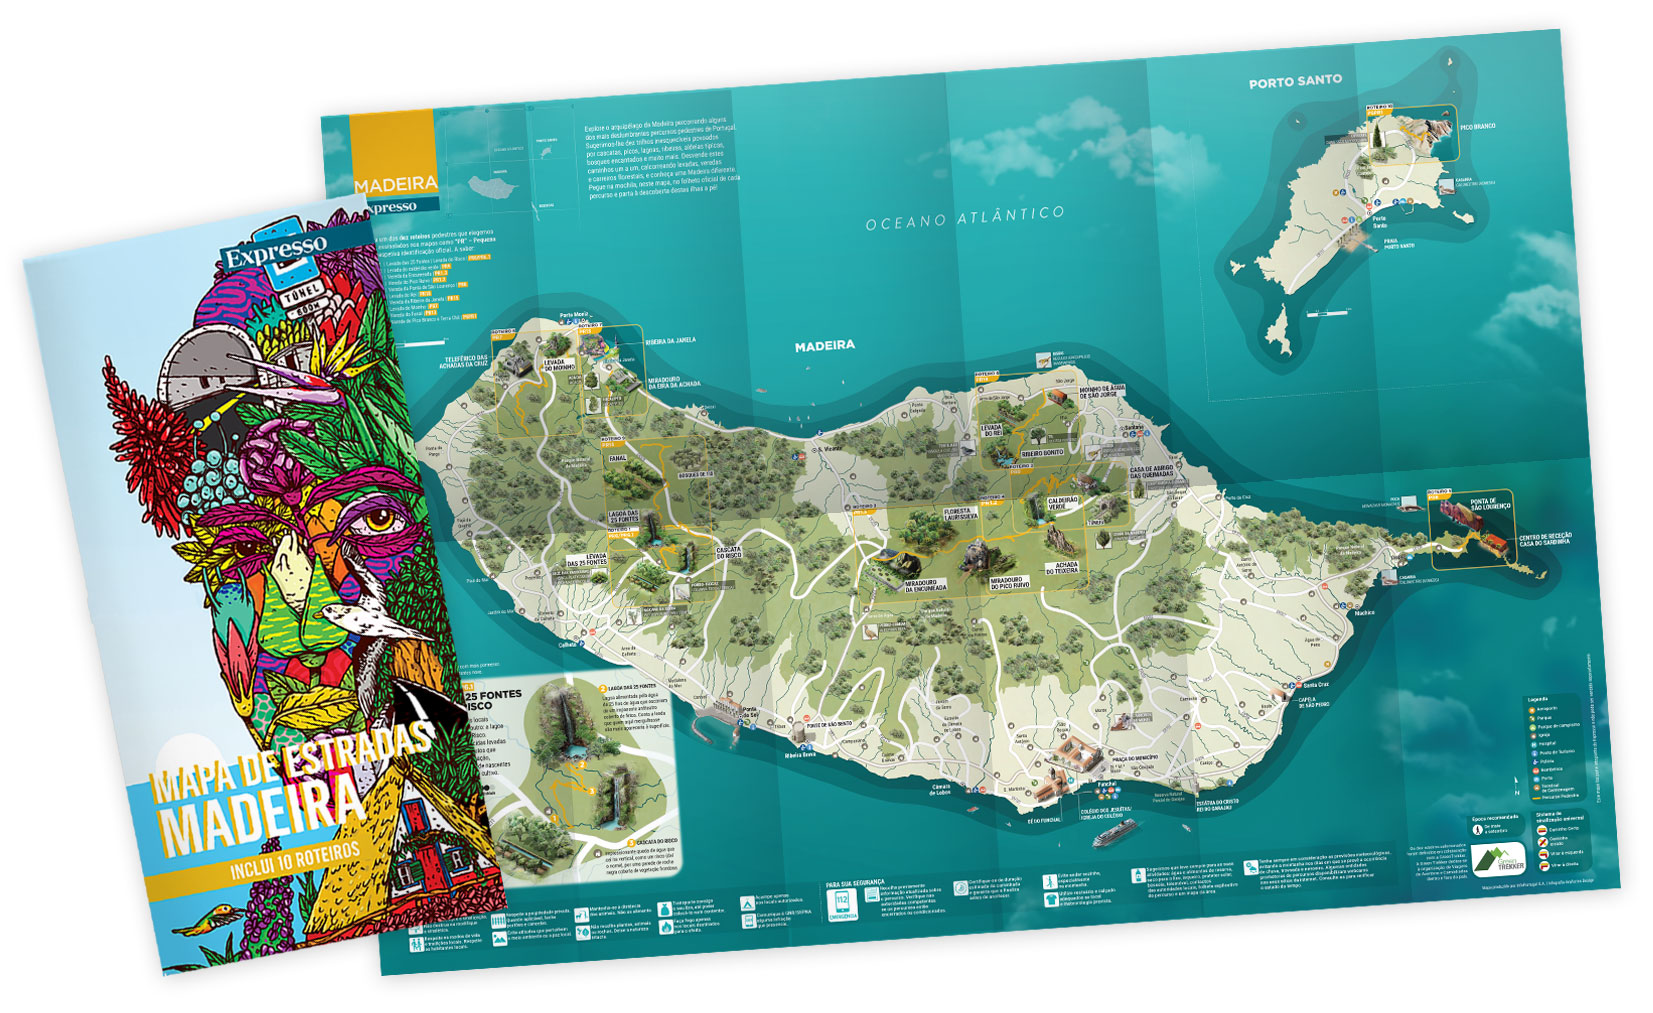 mapas-expresso-2019-madeira-by-infoportugal